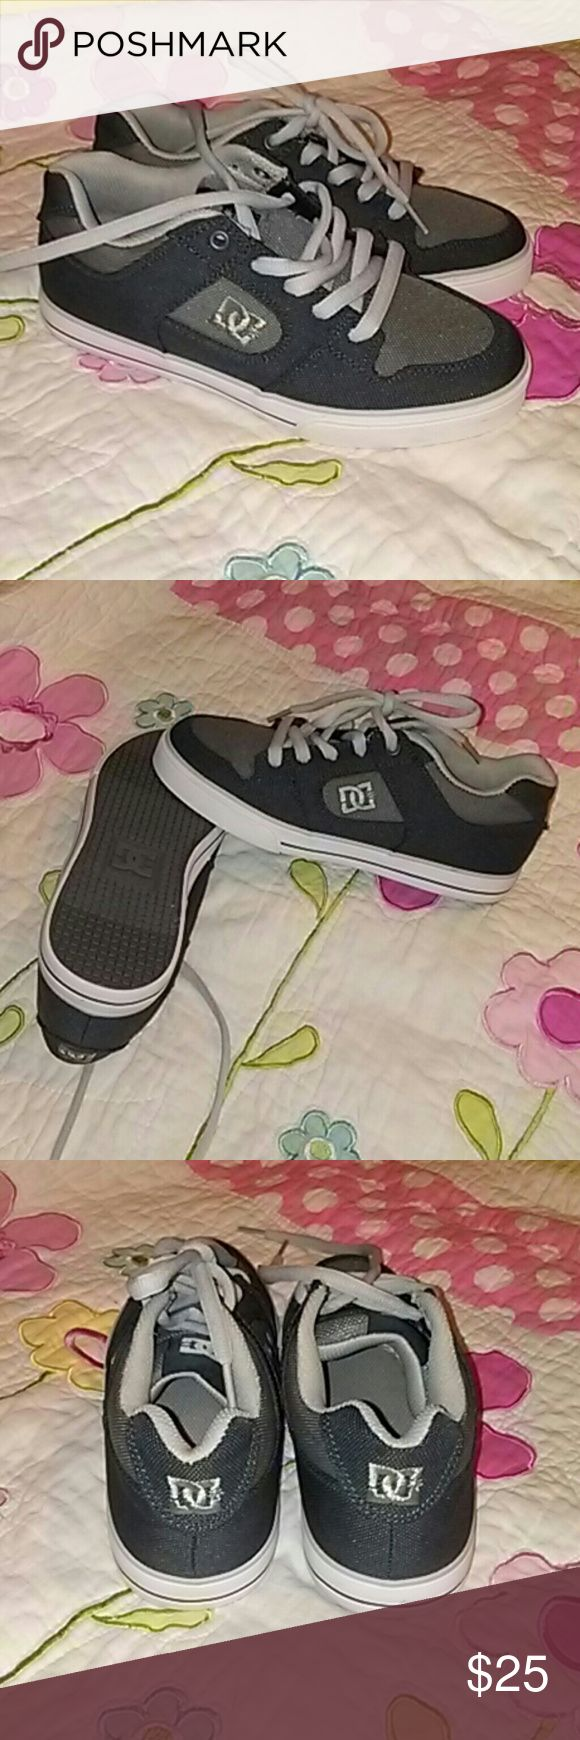 DC sneakers Never worn kids DC sneakers. They look brand new as you can see from pictures. Very nice sneaker for school or play. DC Shoes Sneakers